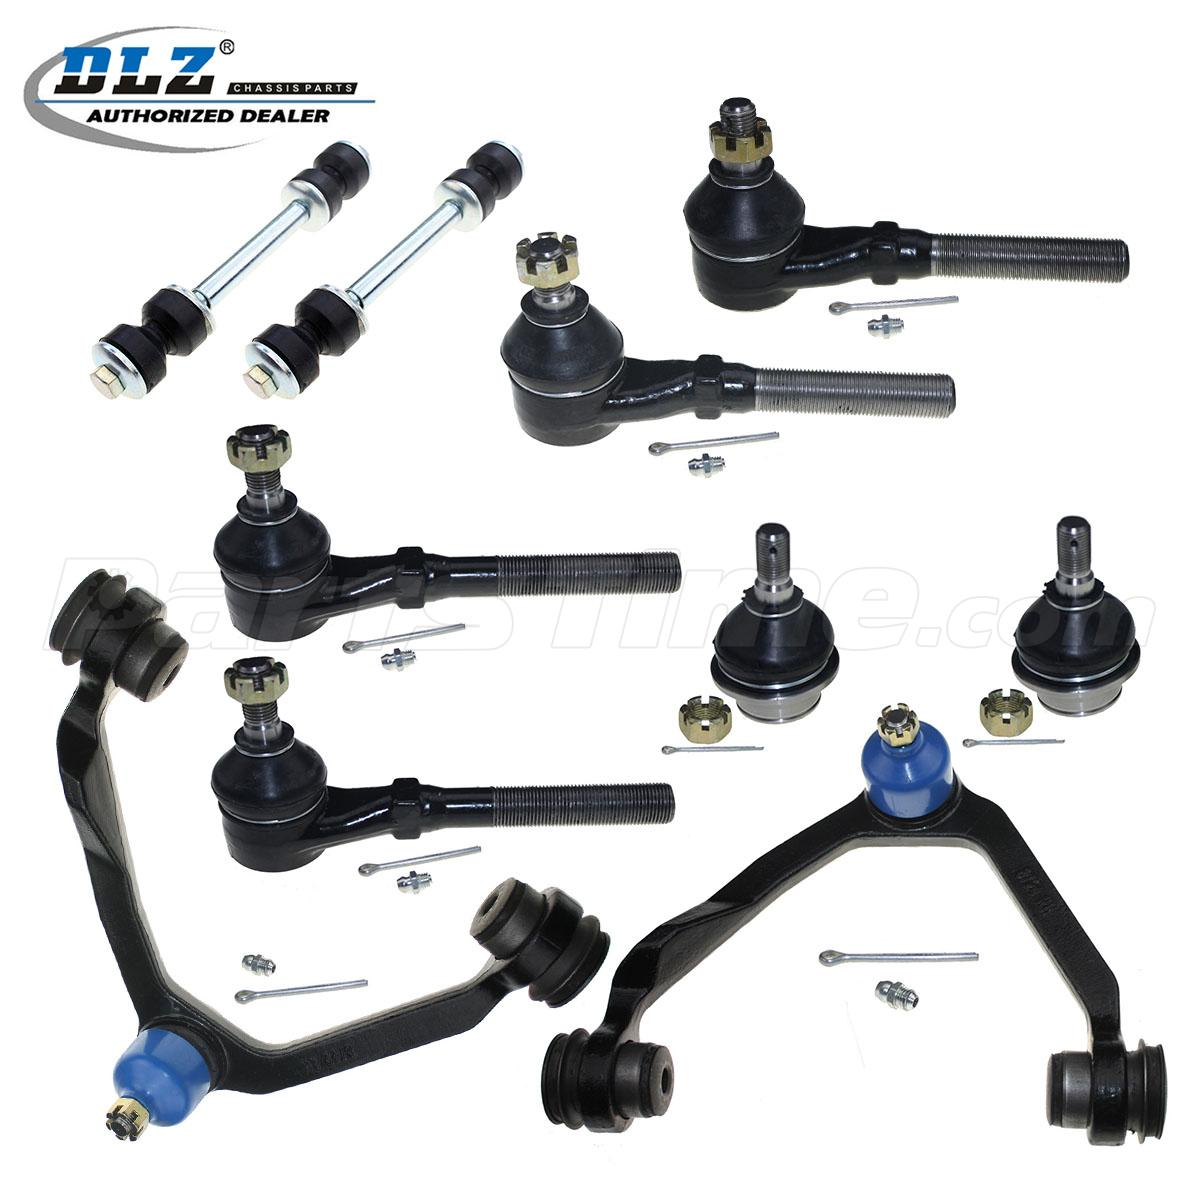 Front Suspension Kit For 1997-02 Ford Expedition(4WD